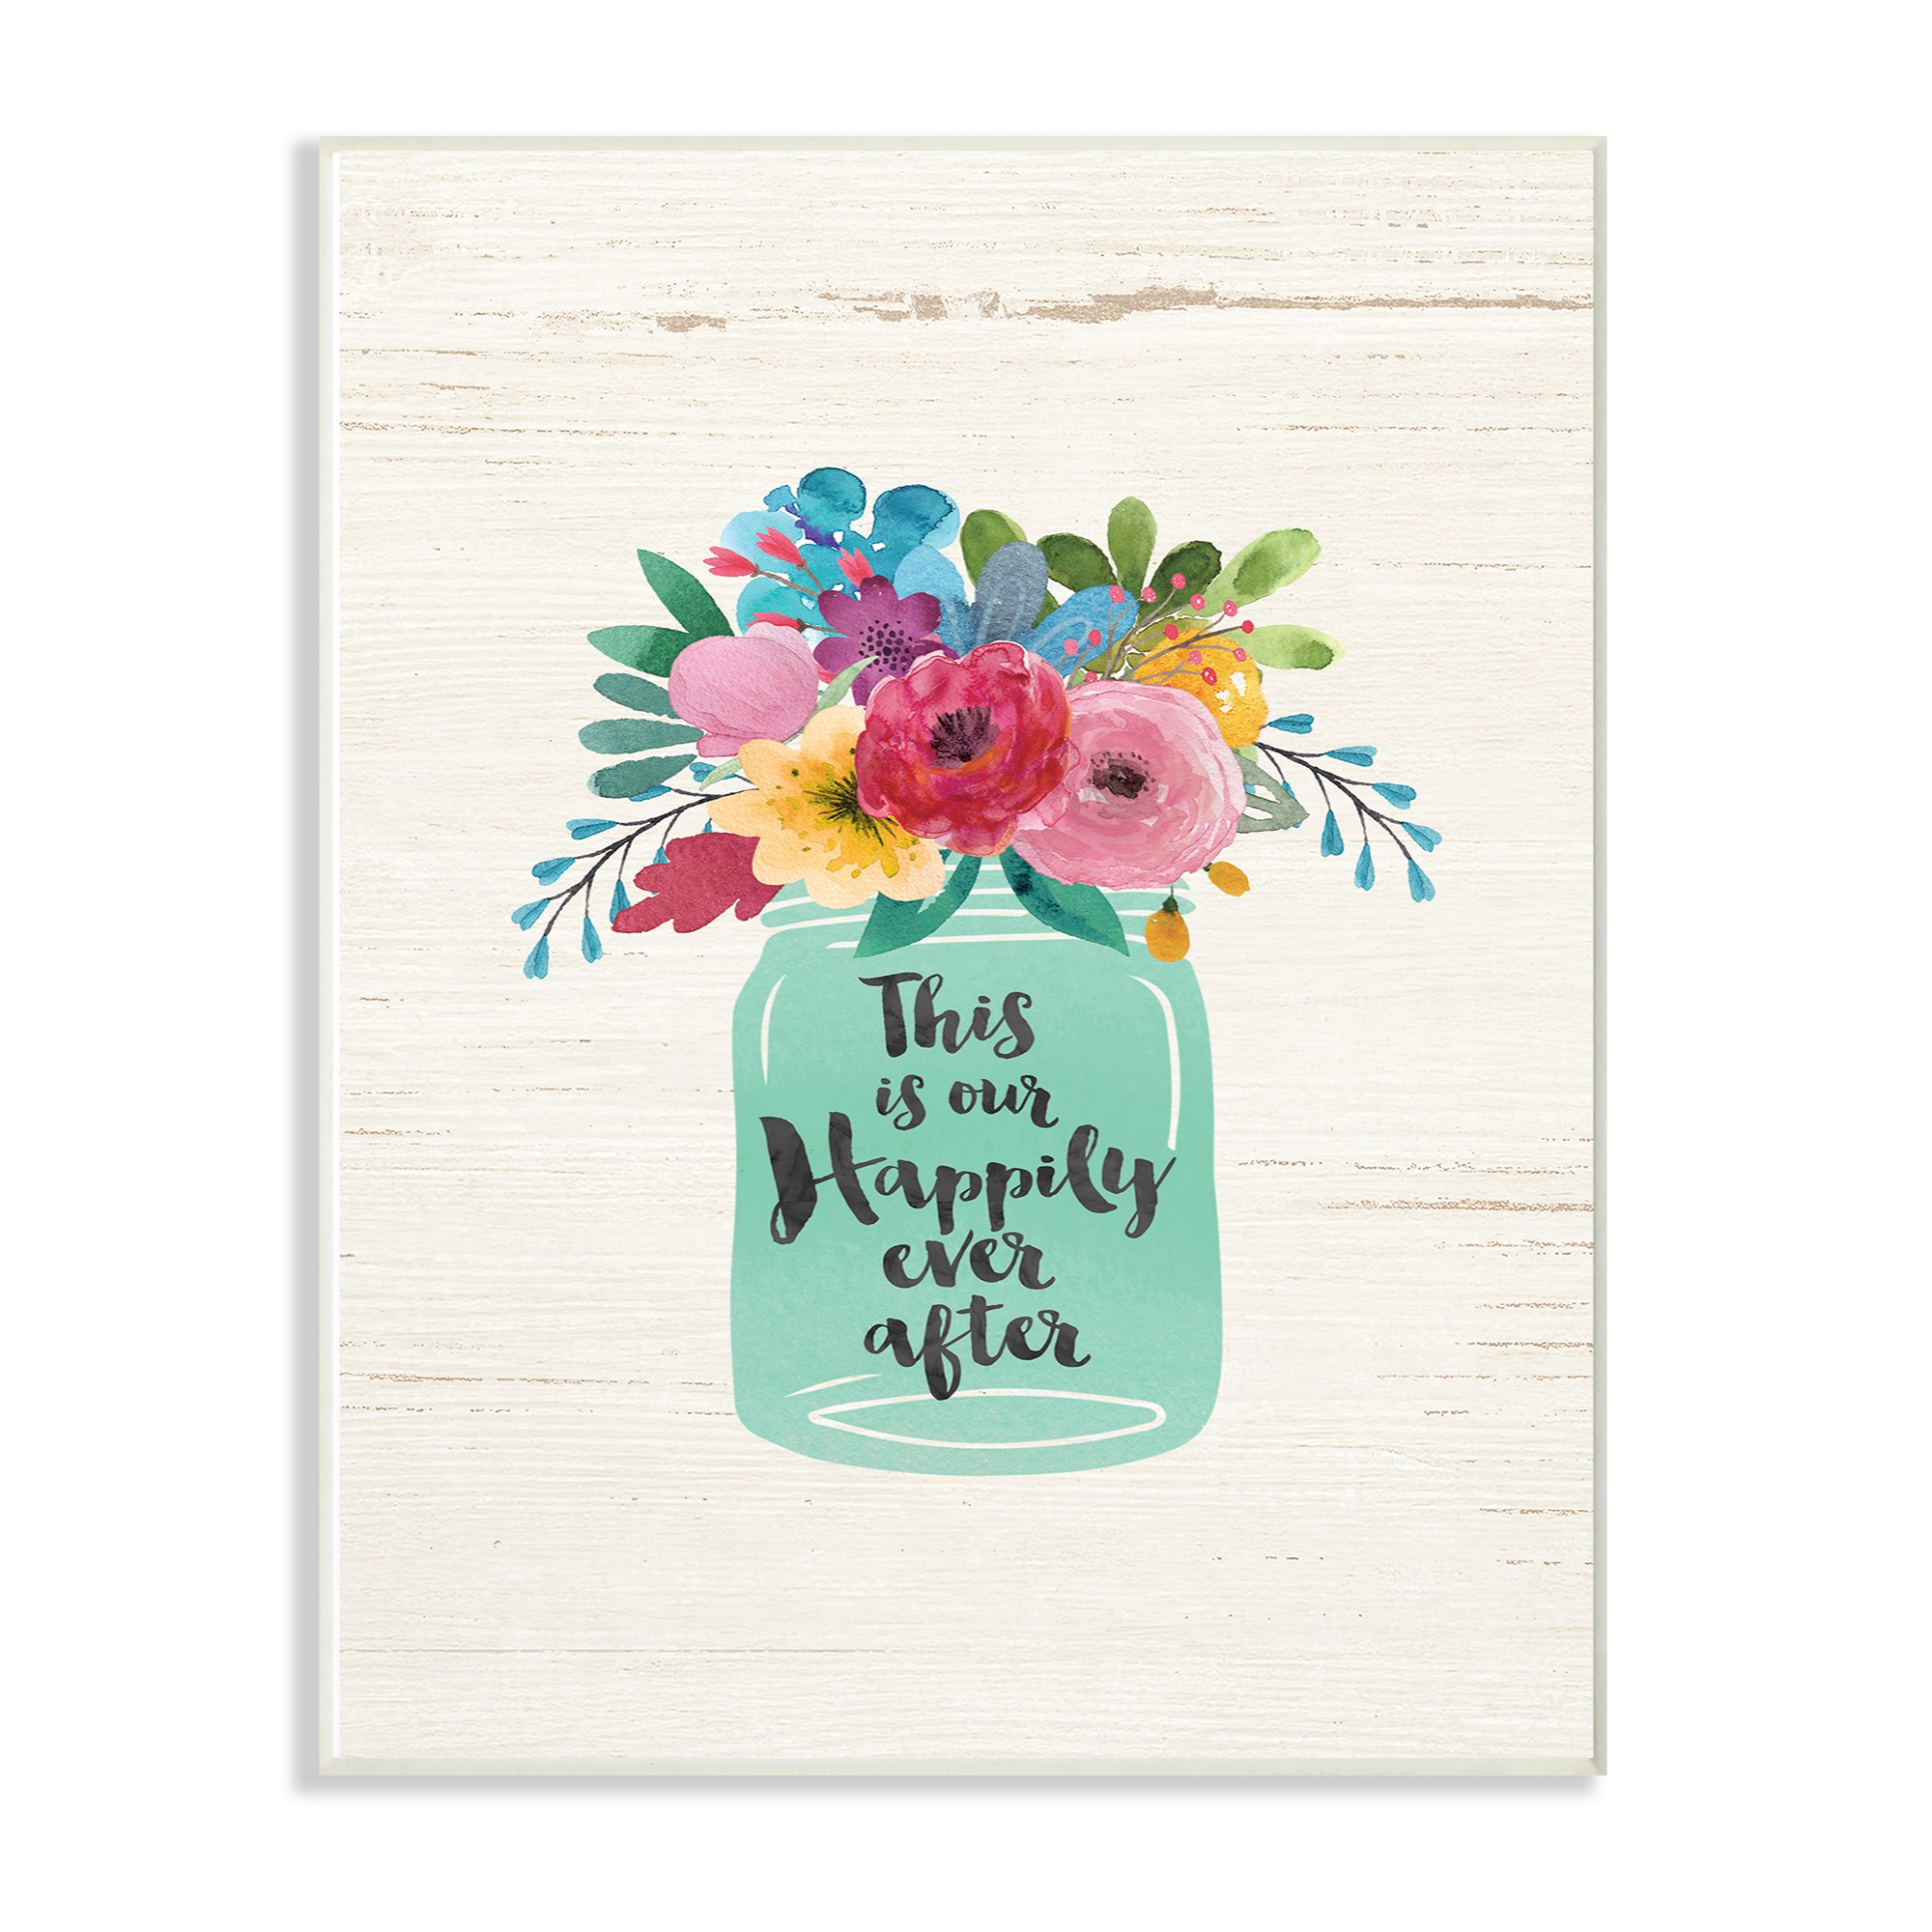 12 Home Decor Gift Ideas From Walmart: The Stupell Home Decor Collection This Is Our Happily Ever